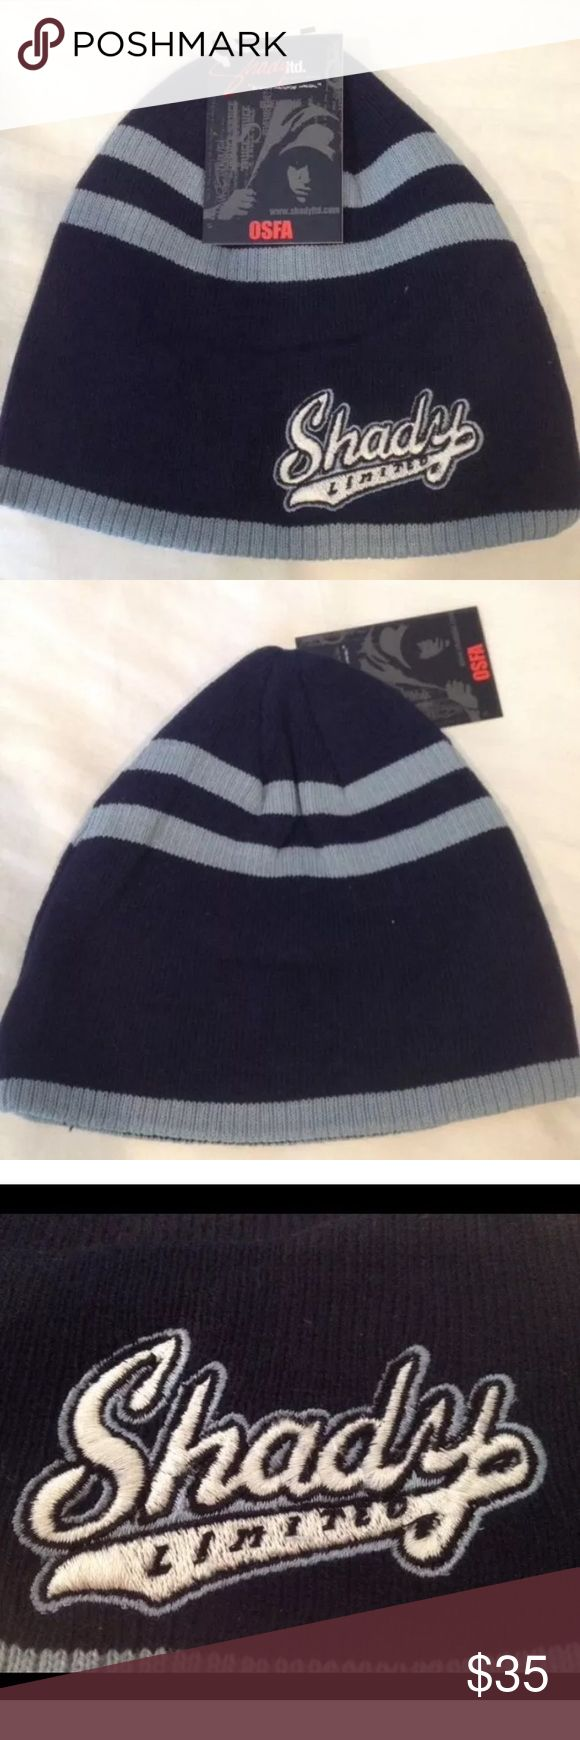 New Navy &light blue Eminem Shady Limited edition Brand new with tags Eminem Shady Limited edition 🔥❤️🔥Navy with light blue stripe beanie . One size fits all Cotton blend with acrylic  This is a HARD to Find beanie .  This is 100% authentic . Shady LTD Accessories Hats